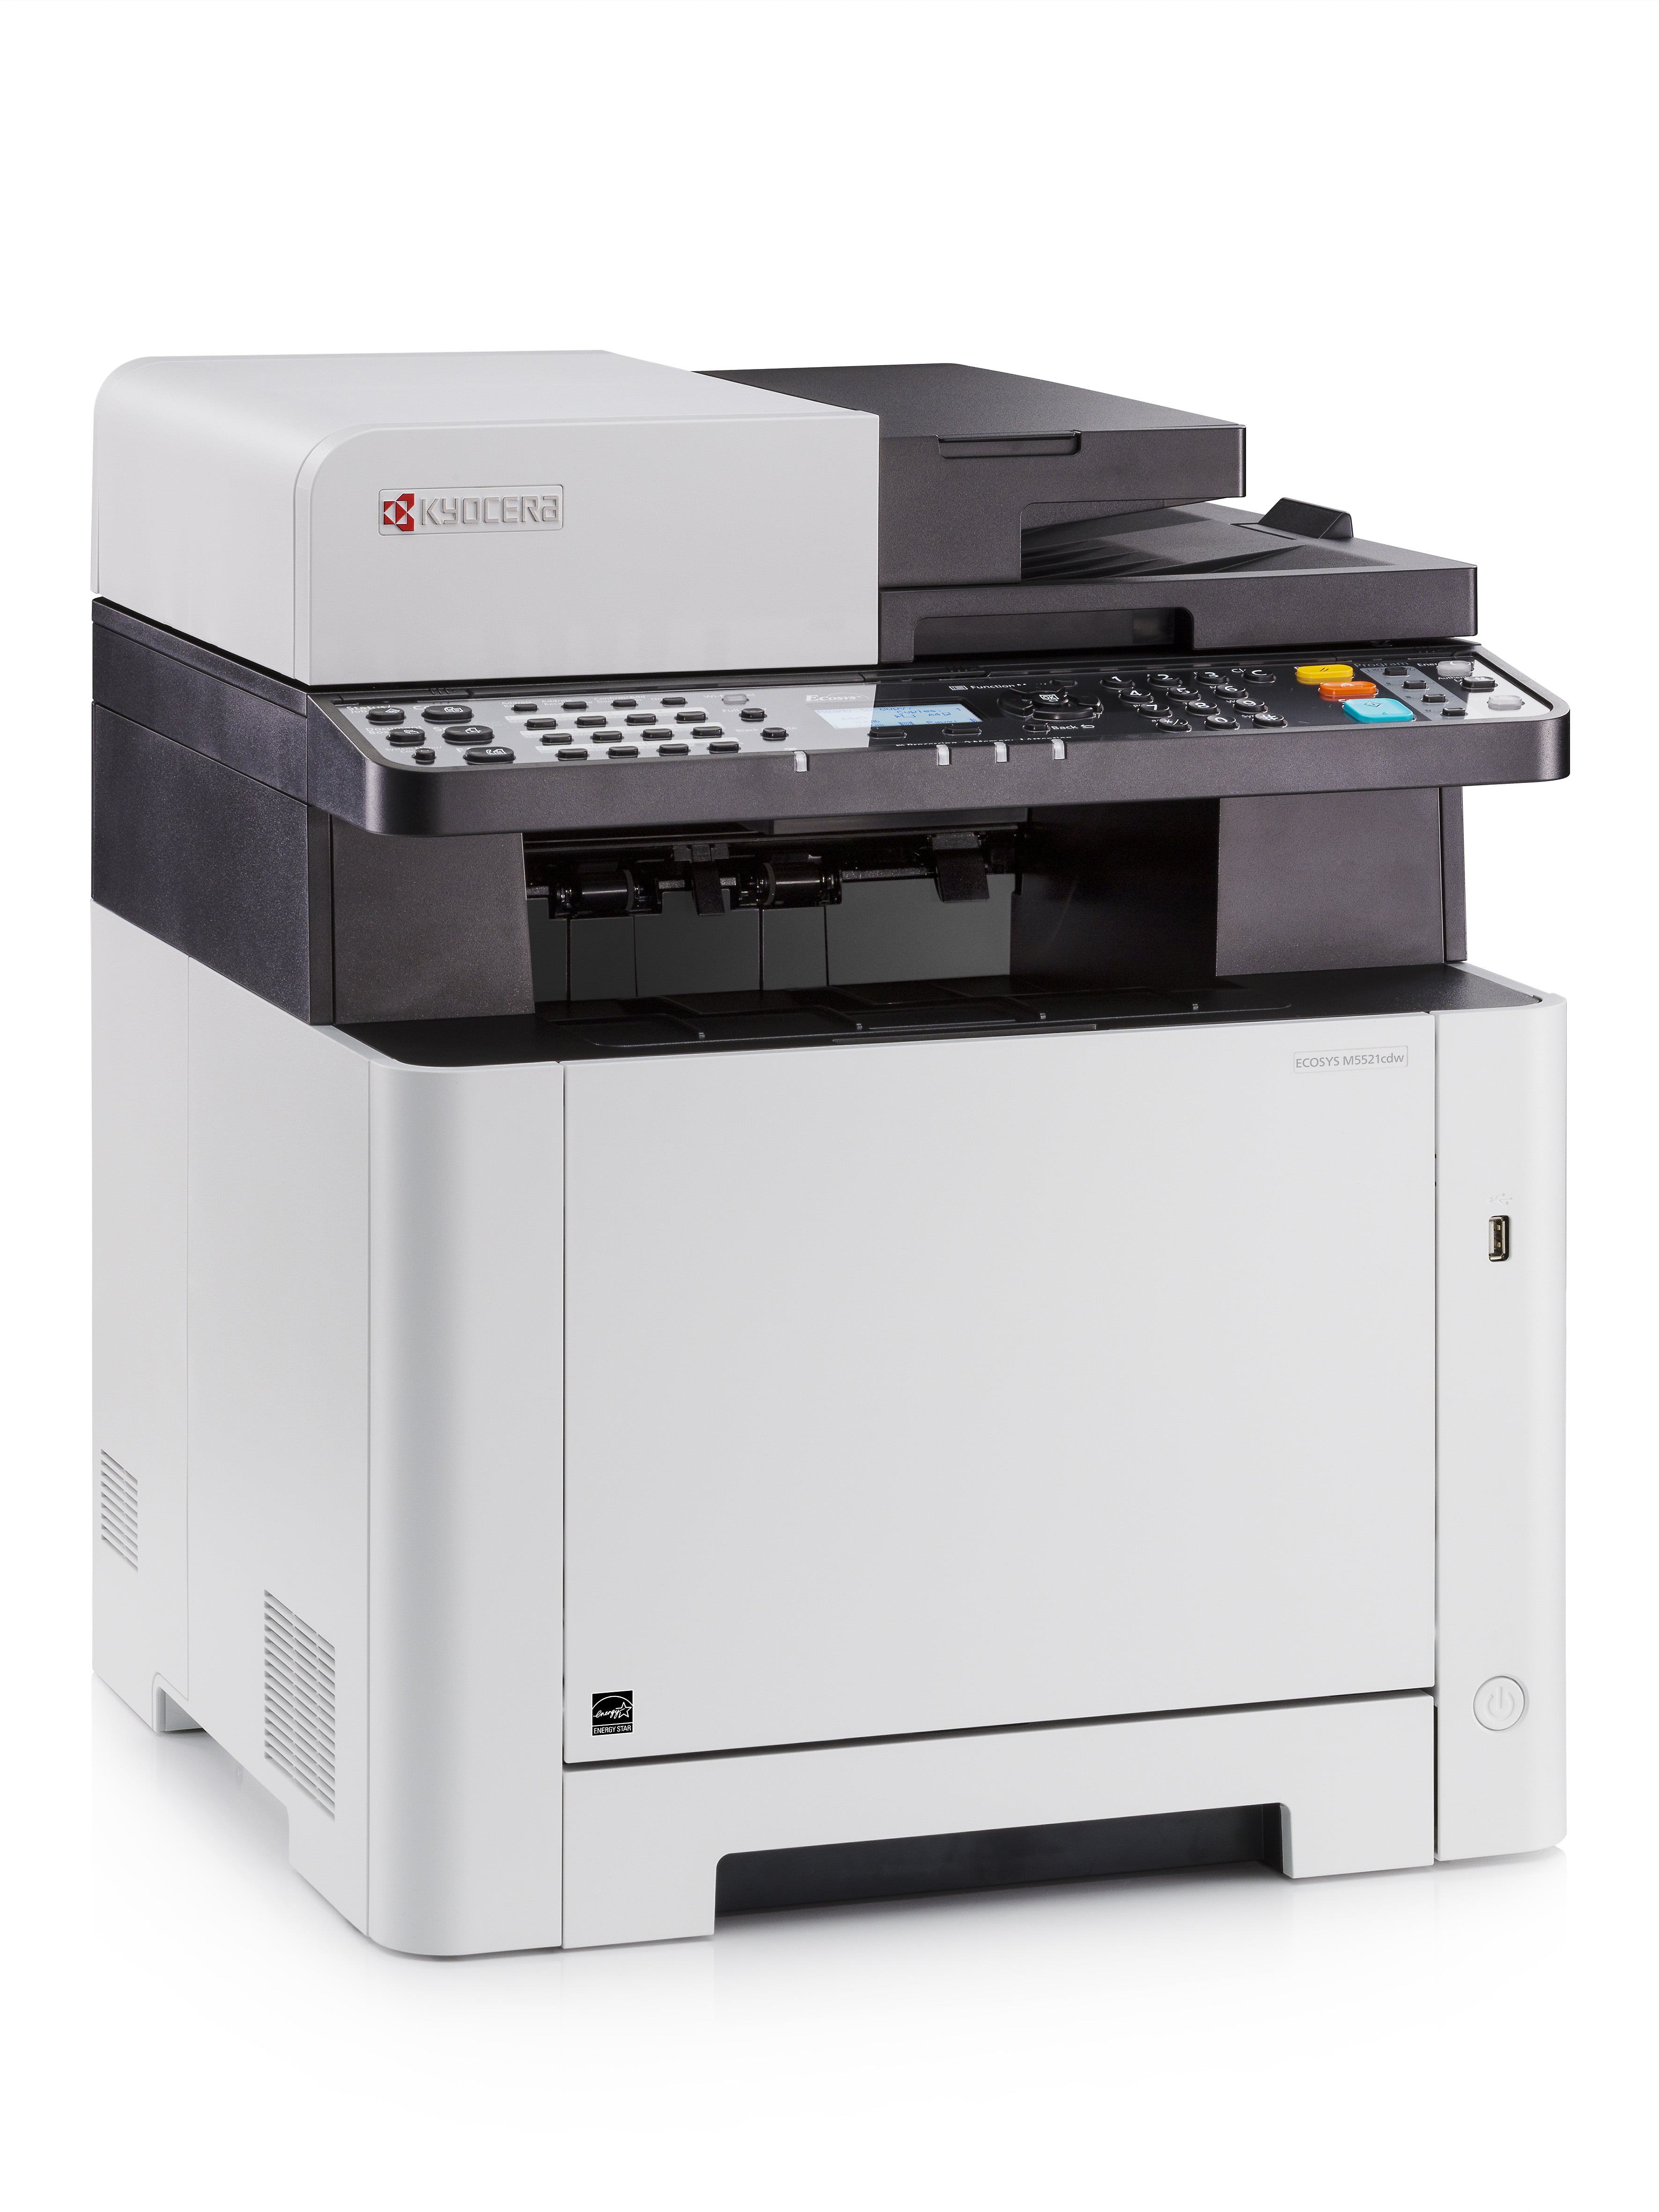 Kyocera ECOSYS M5521cdw Colour Multifunction Laser Printer.